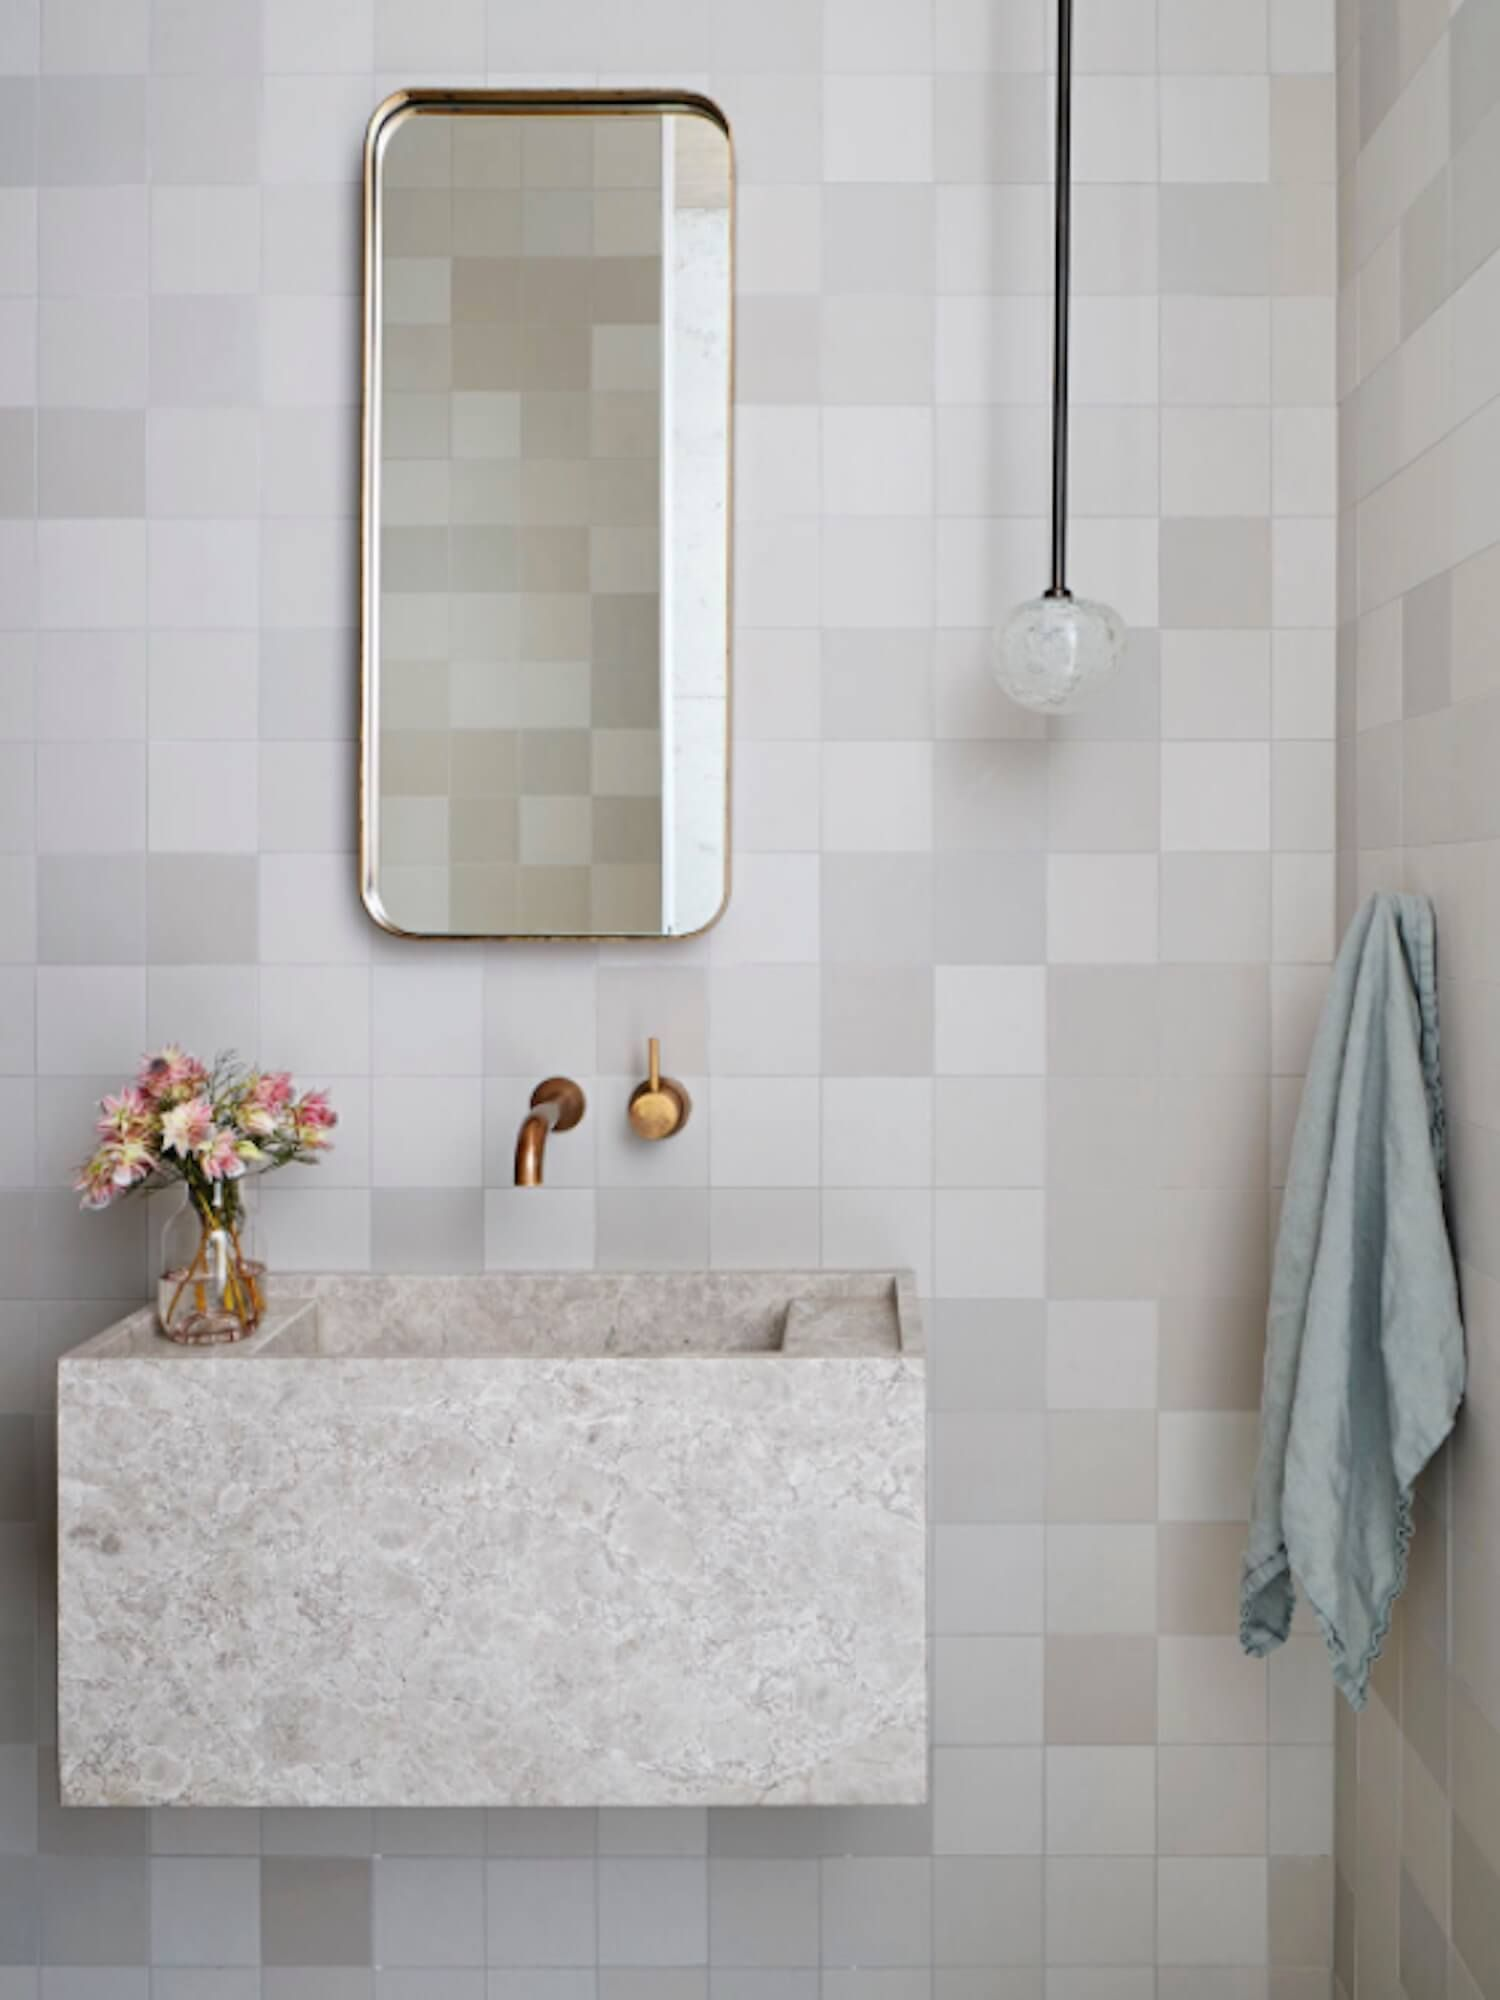 Powder Bath With Fireclay Square Tiles, Minimal Mirror And Pendant